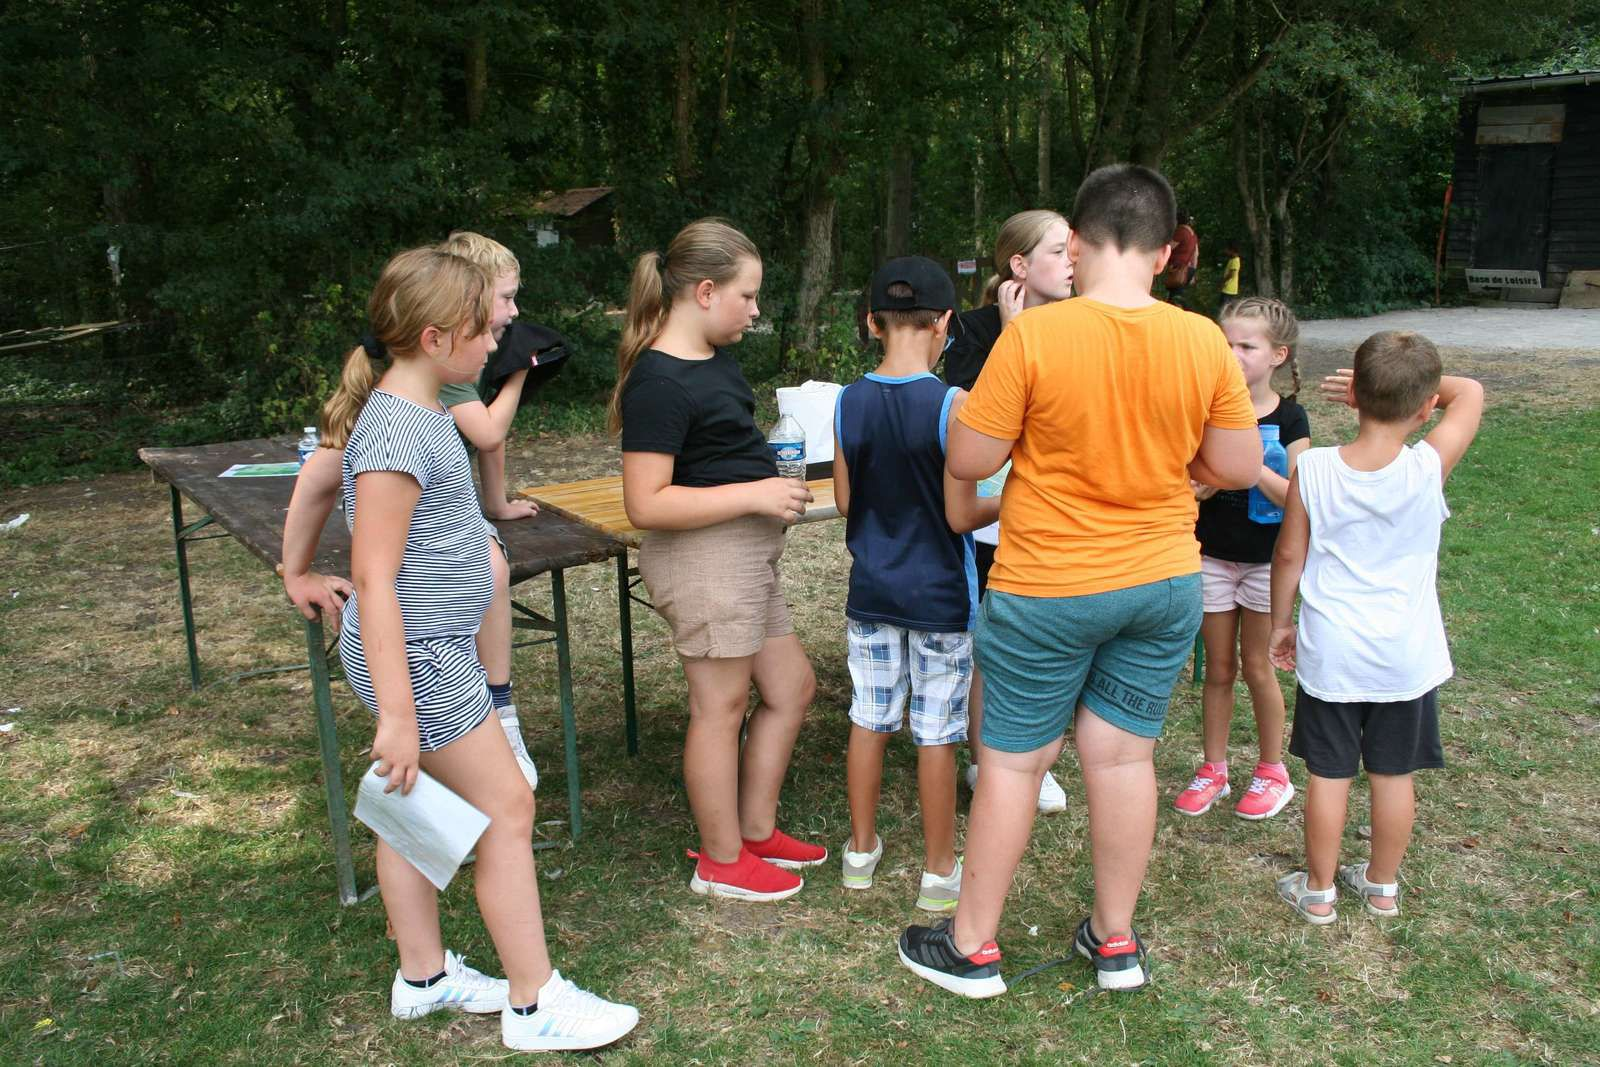 CENTRE LAKANAL-COURSE D'ORIENTATION-BASE DE LOISIRS-WILLEMS